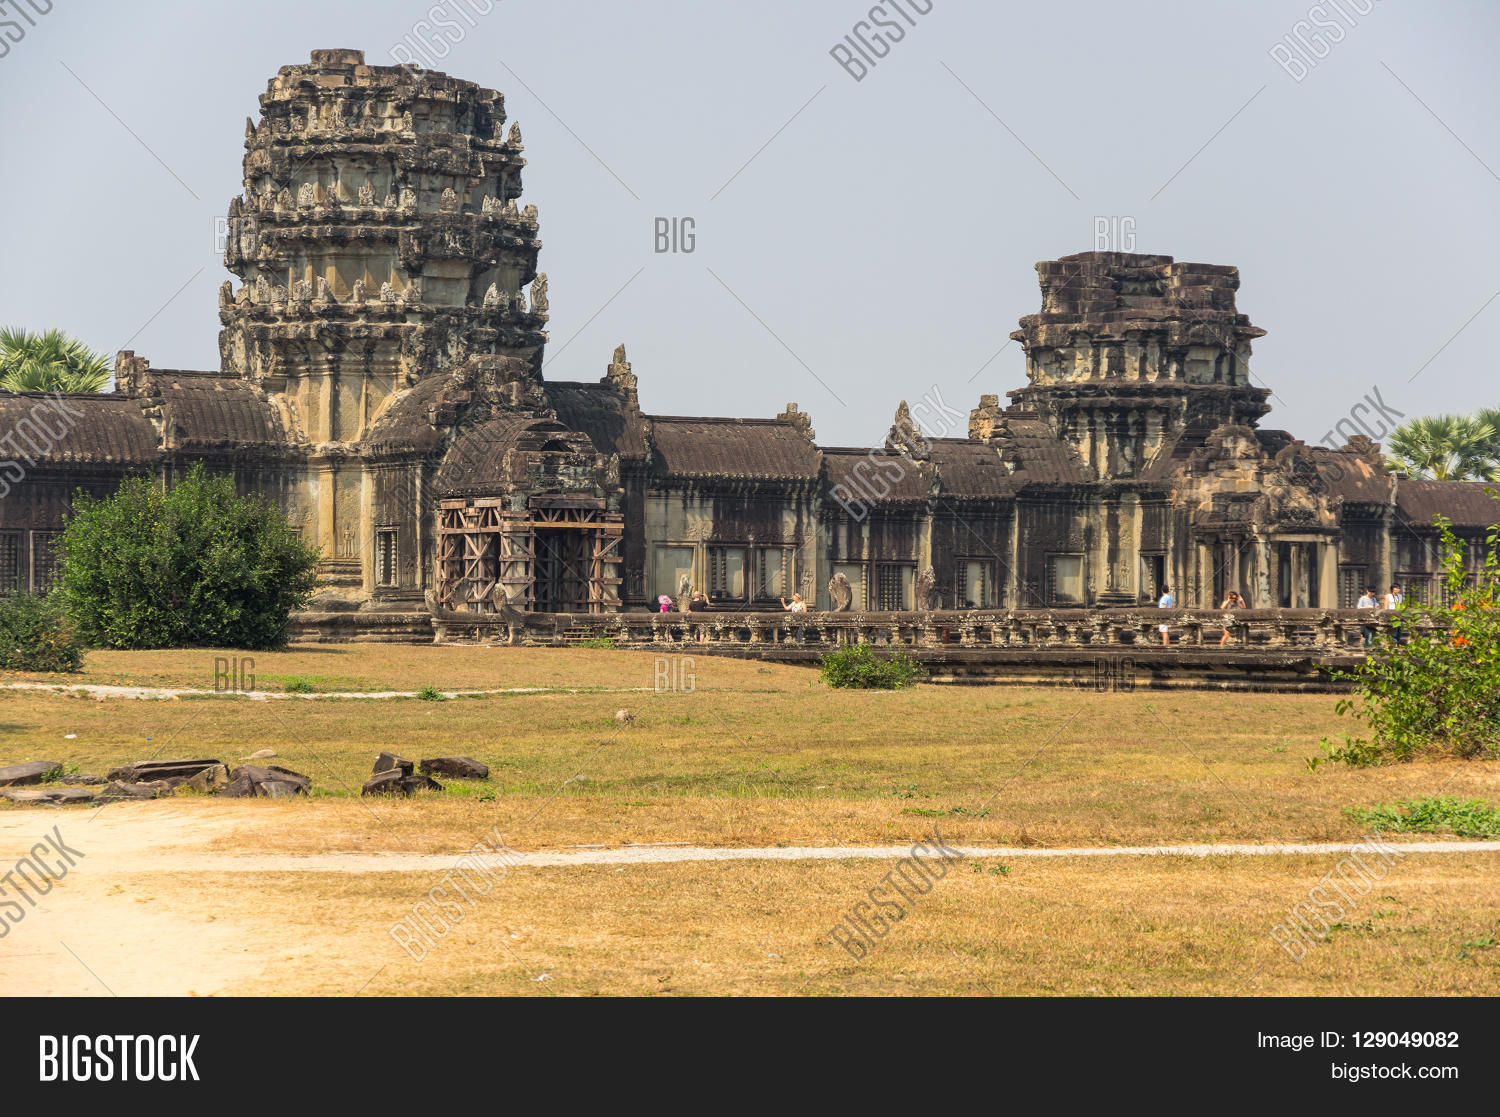 Angkor Wat Temple Image & Photo (Free Trial) | Bigstock